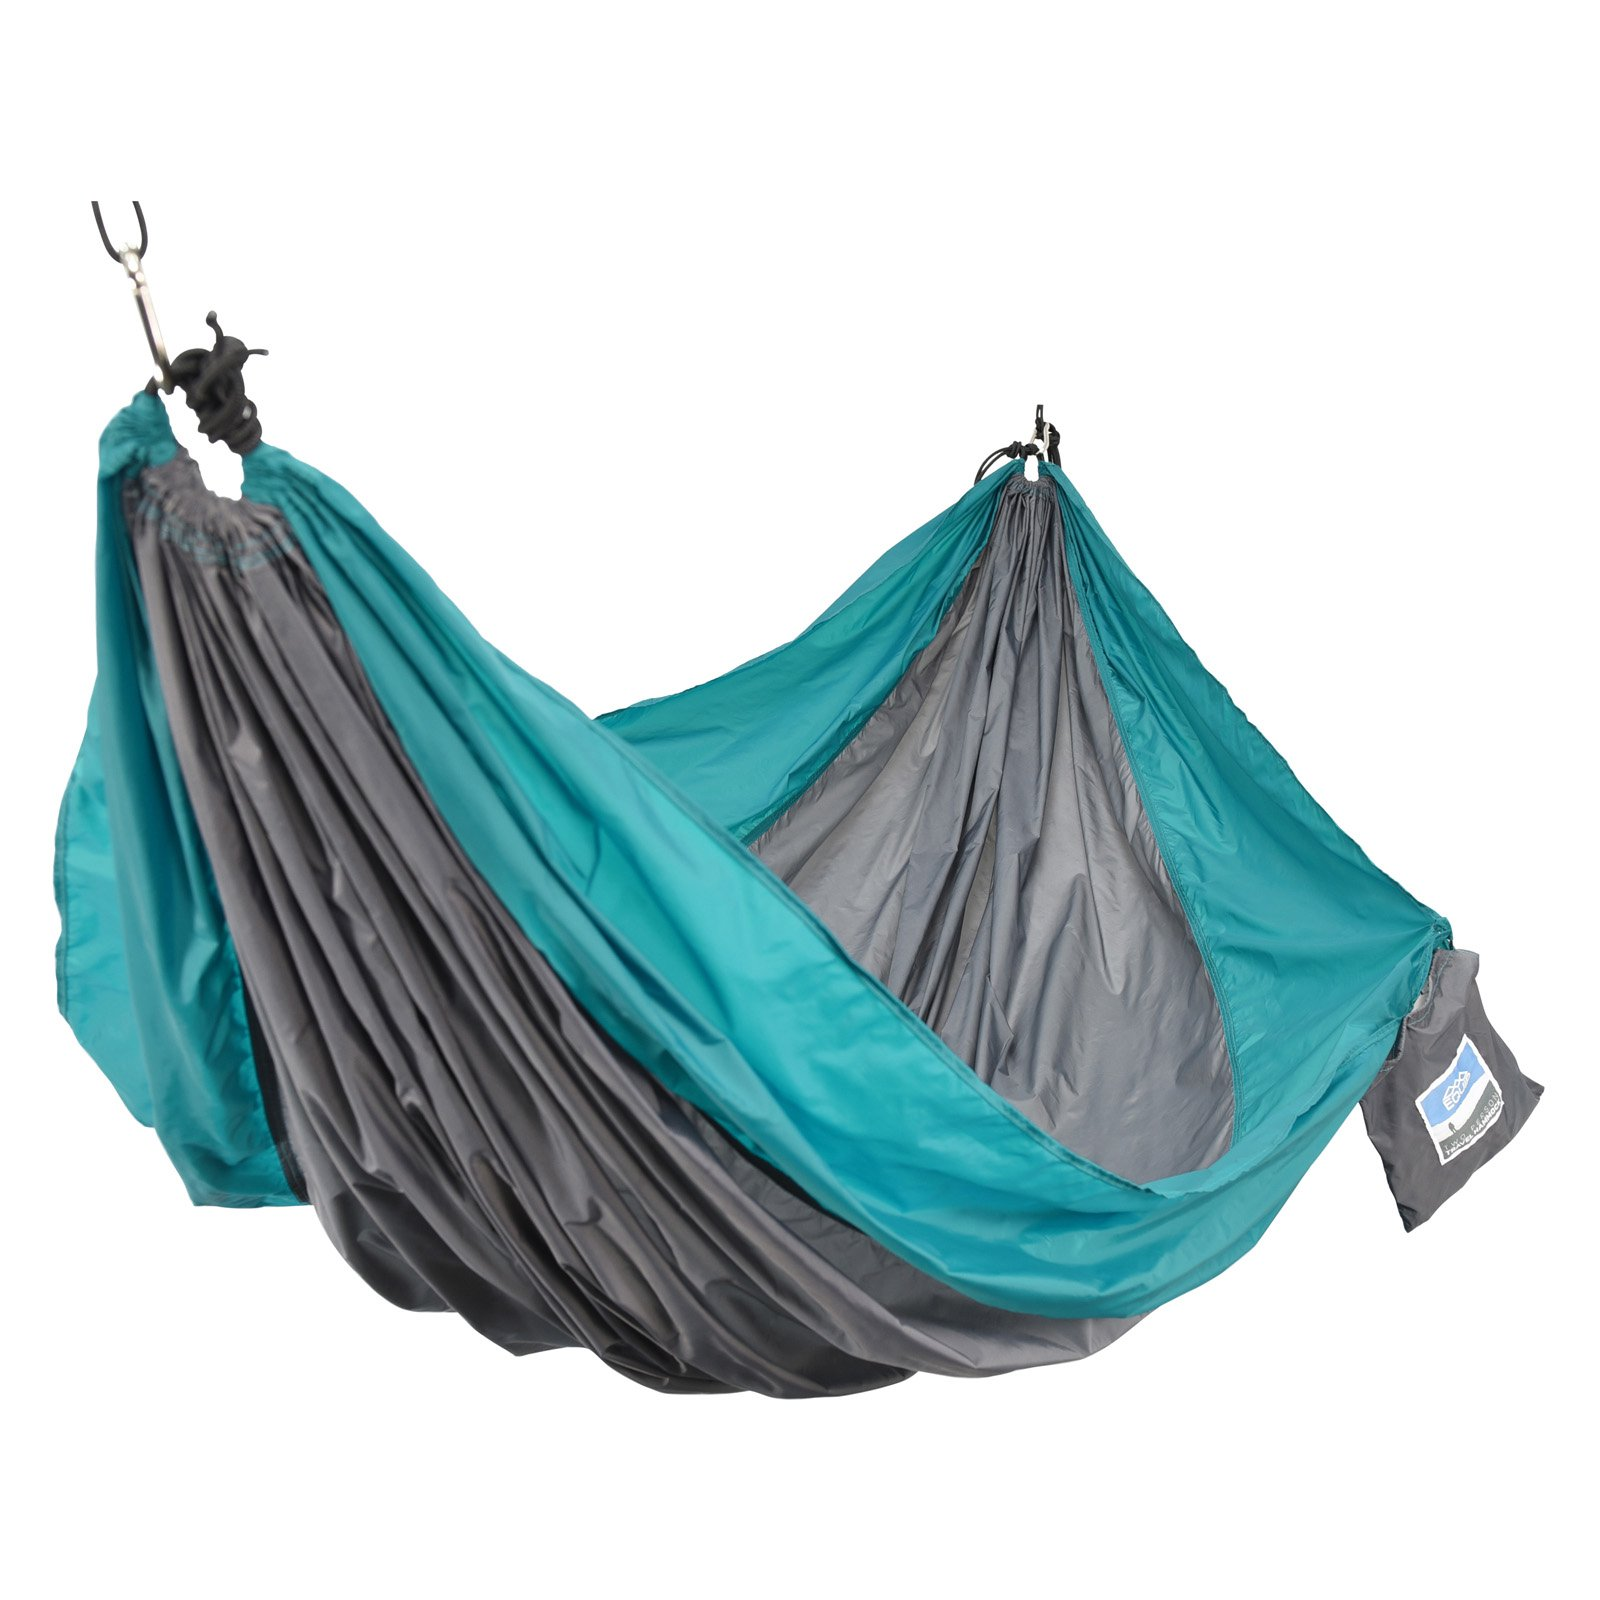 Denovo 96176 2 Person Travel Hammock - Teal and Gray